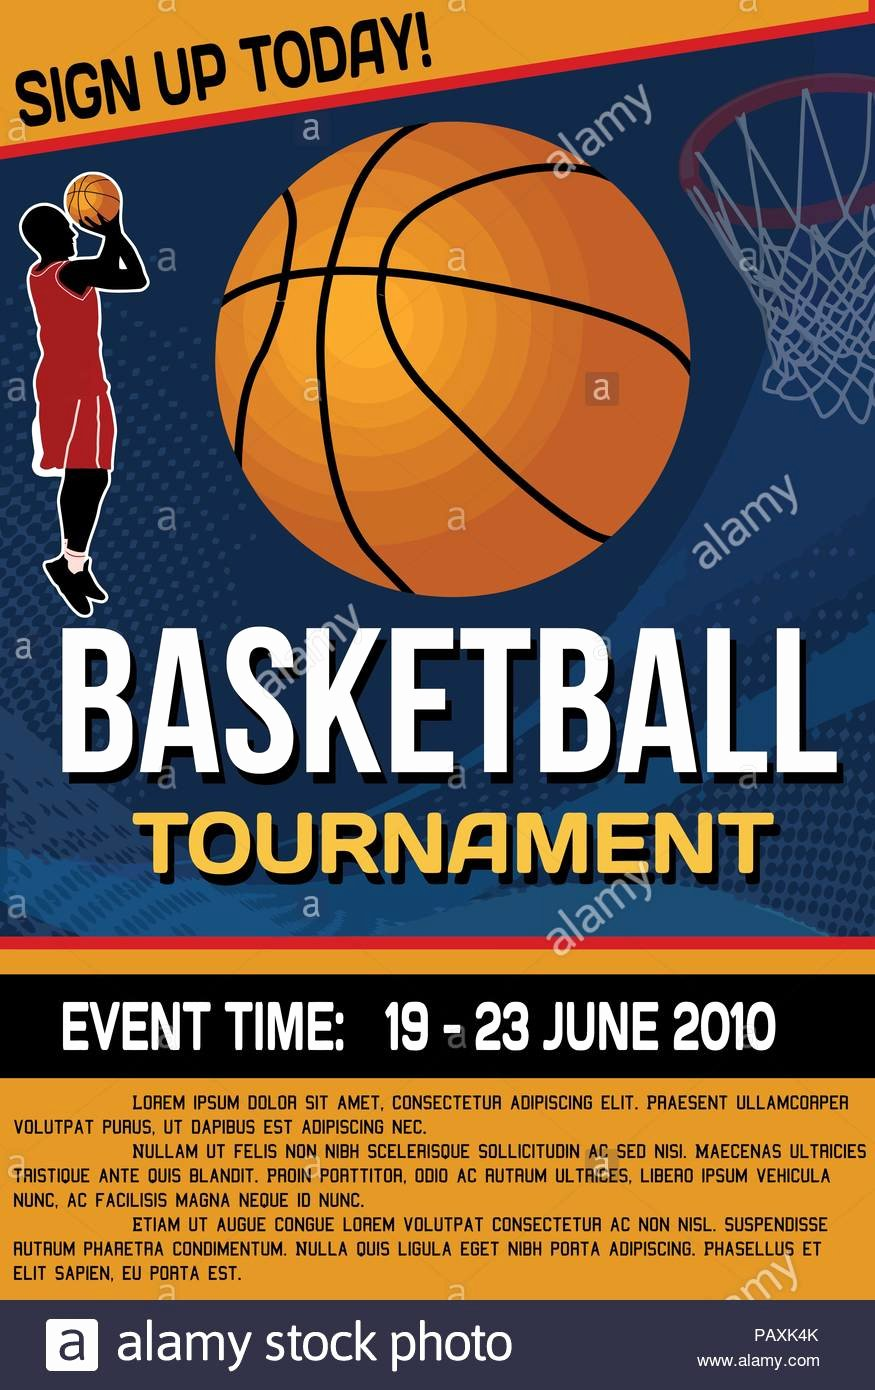 Basketball tournament Flyer Template Elegant Basketball tournament Flyer or Poster Background Vector